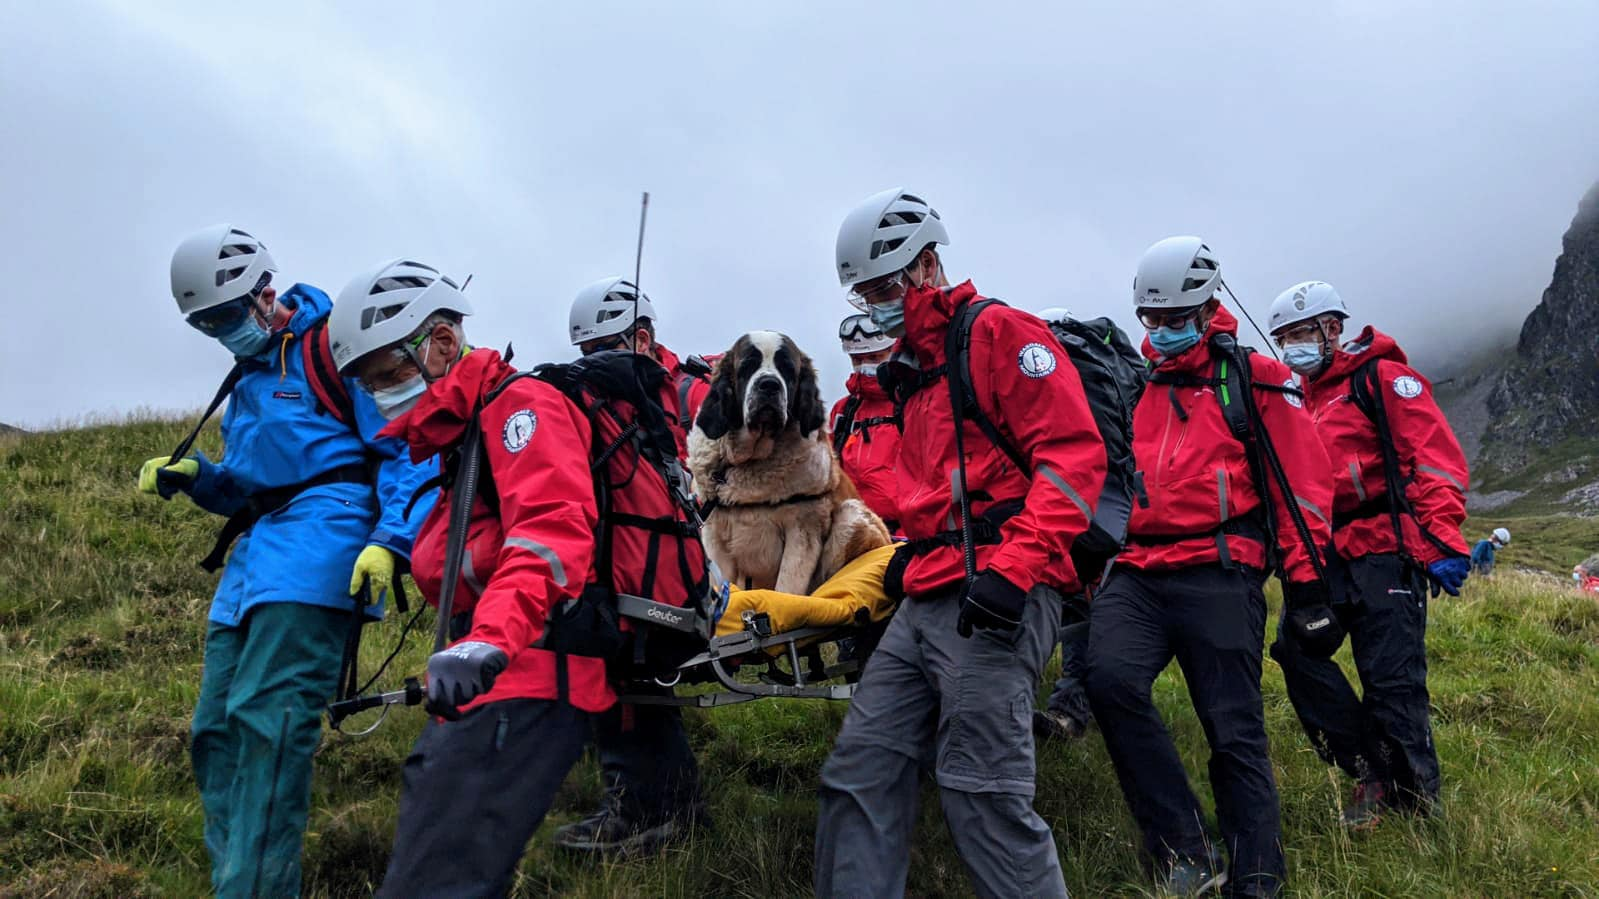 Wasdale Mountain Rescue Team spoke to vets before embarking on their mission to figure out how to best approach the rescue.  Source: Facebook/Wasdale Mountain Rescue Team